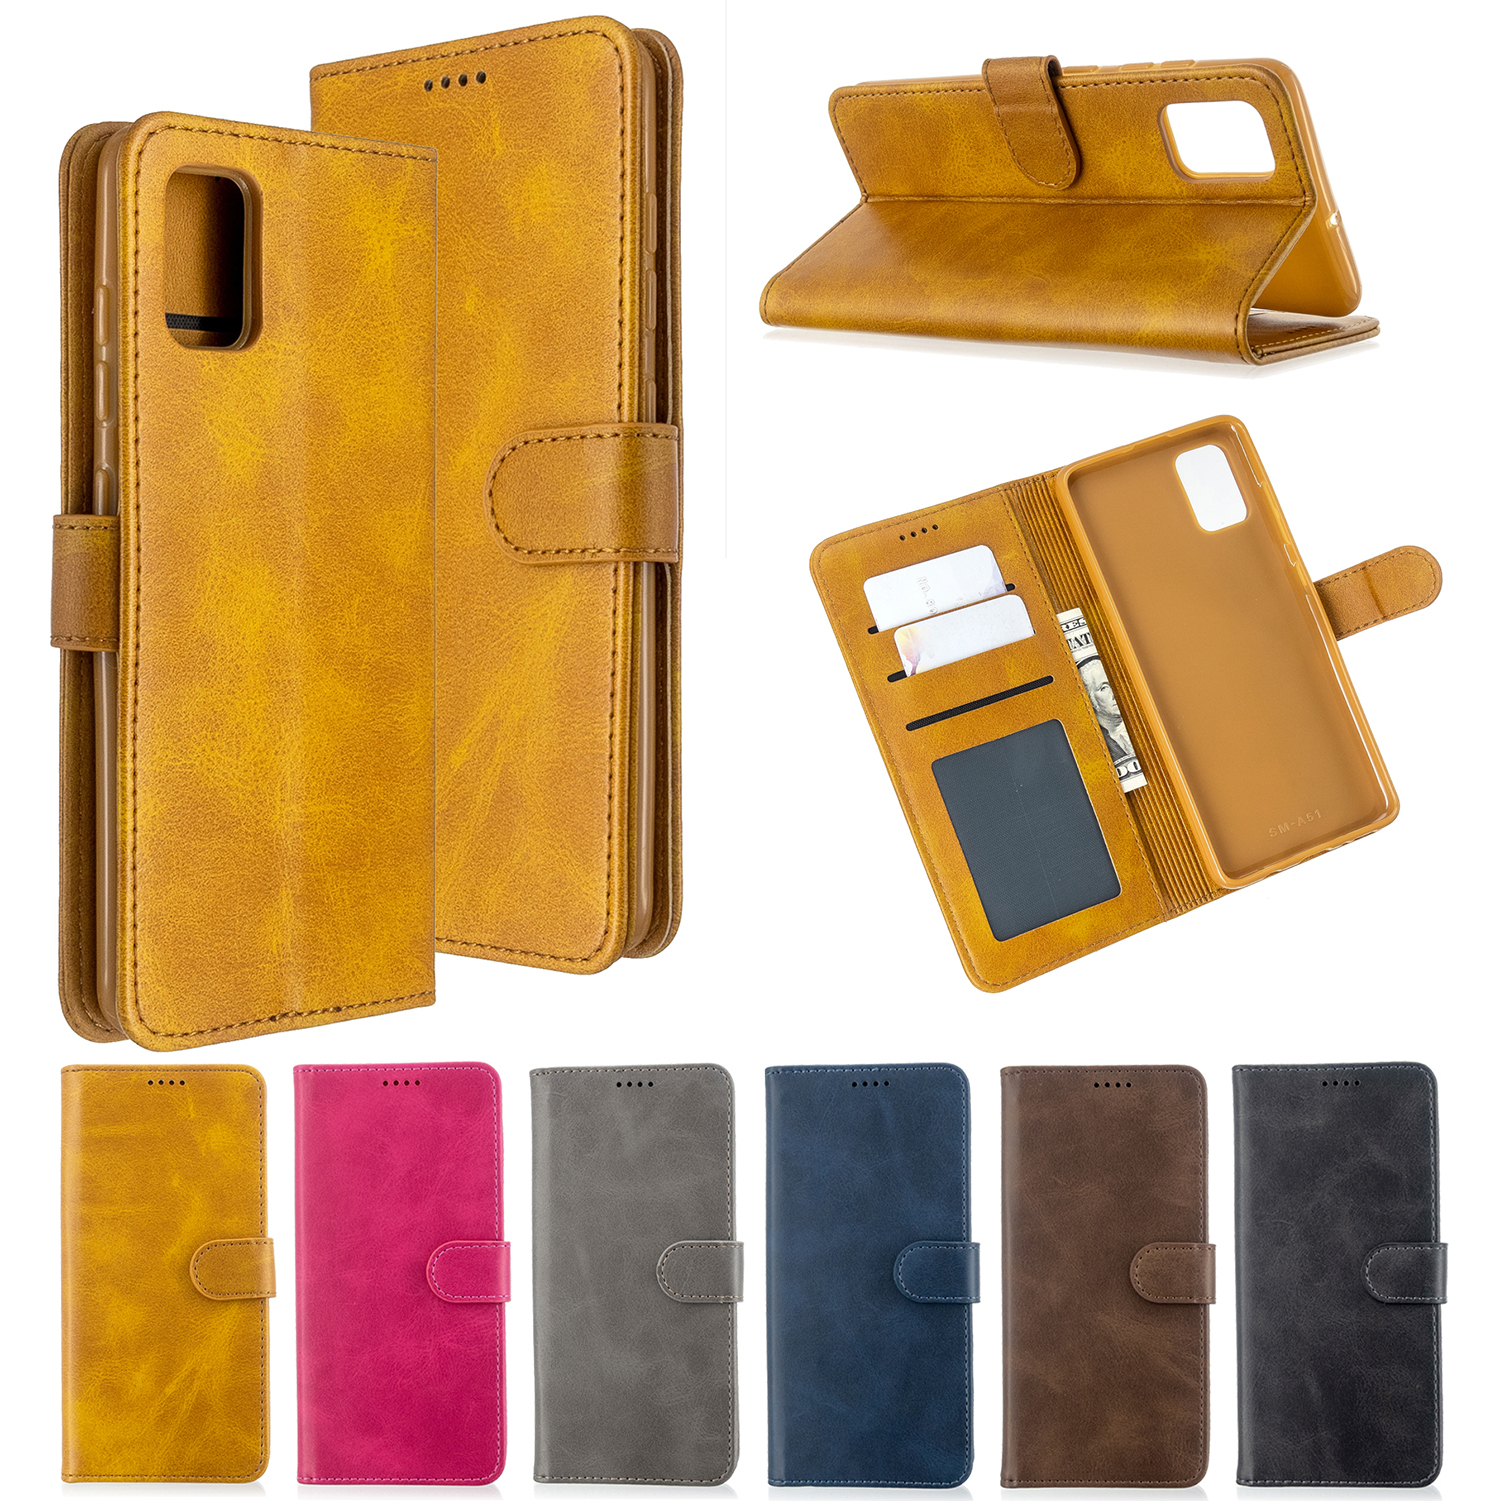 Luxury Leather Case For Samsung A51 A50 A70 A40 A10 A6 A7 A9 2018 Flip Wallet Case Funda For Galaxy J4 J6 Plus J3 J5 J7 Coque image